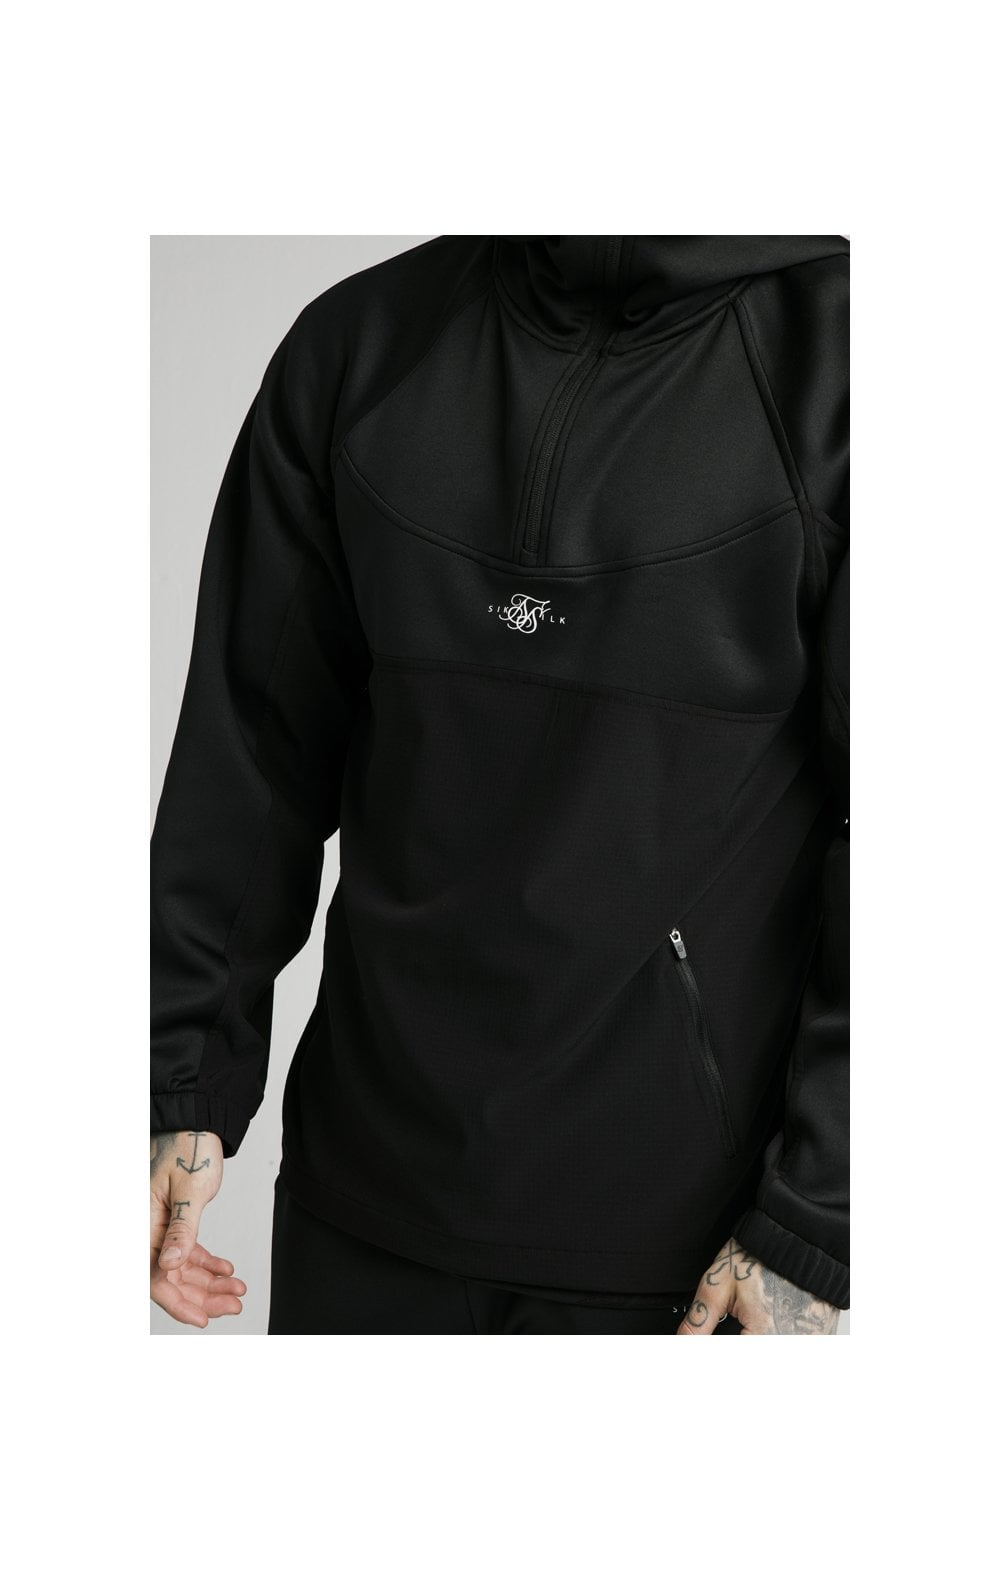 Load image into Gallery viewer, SikSilk Tranquil Quarter Zip Vent Pullover - Black (1)